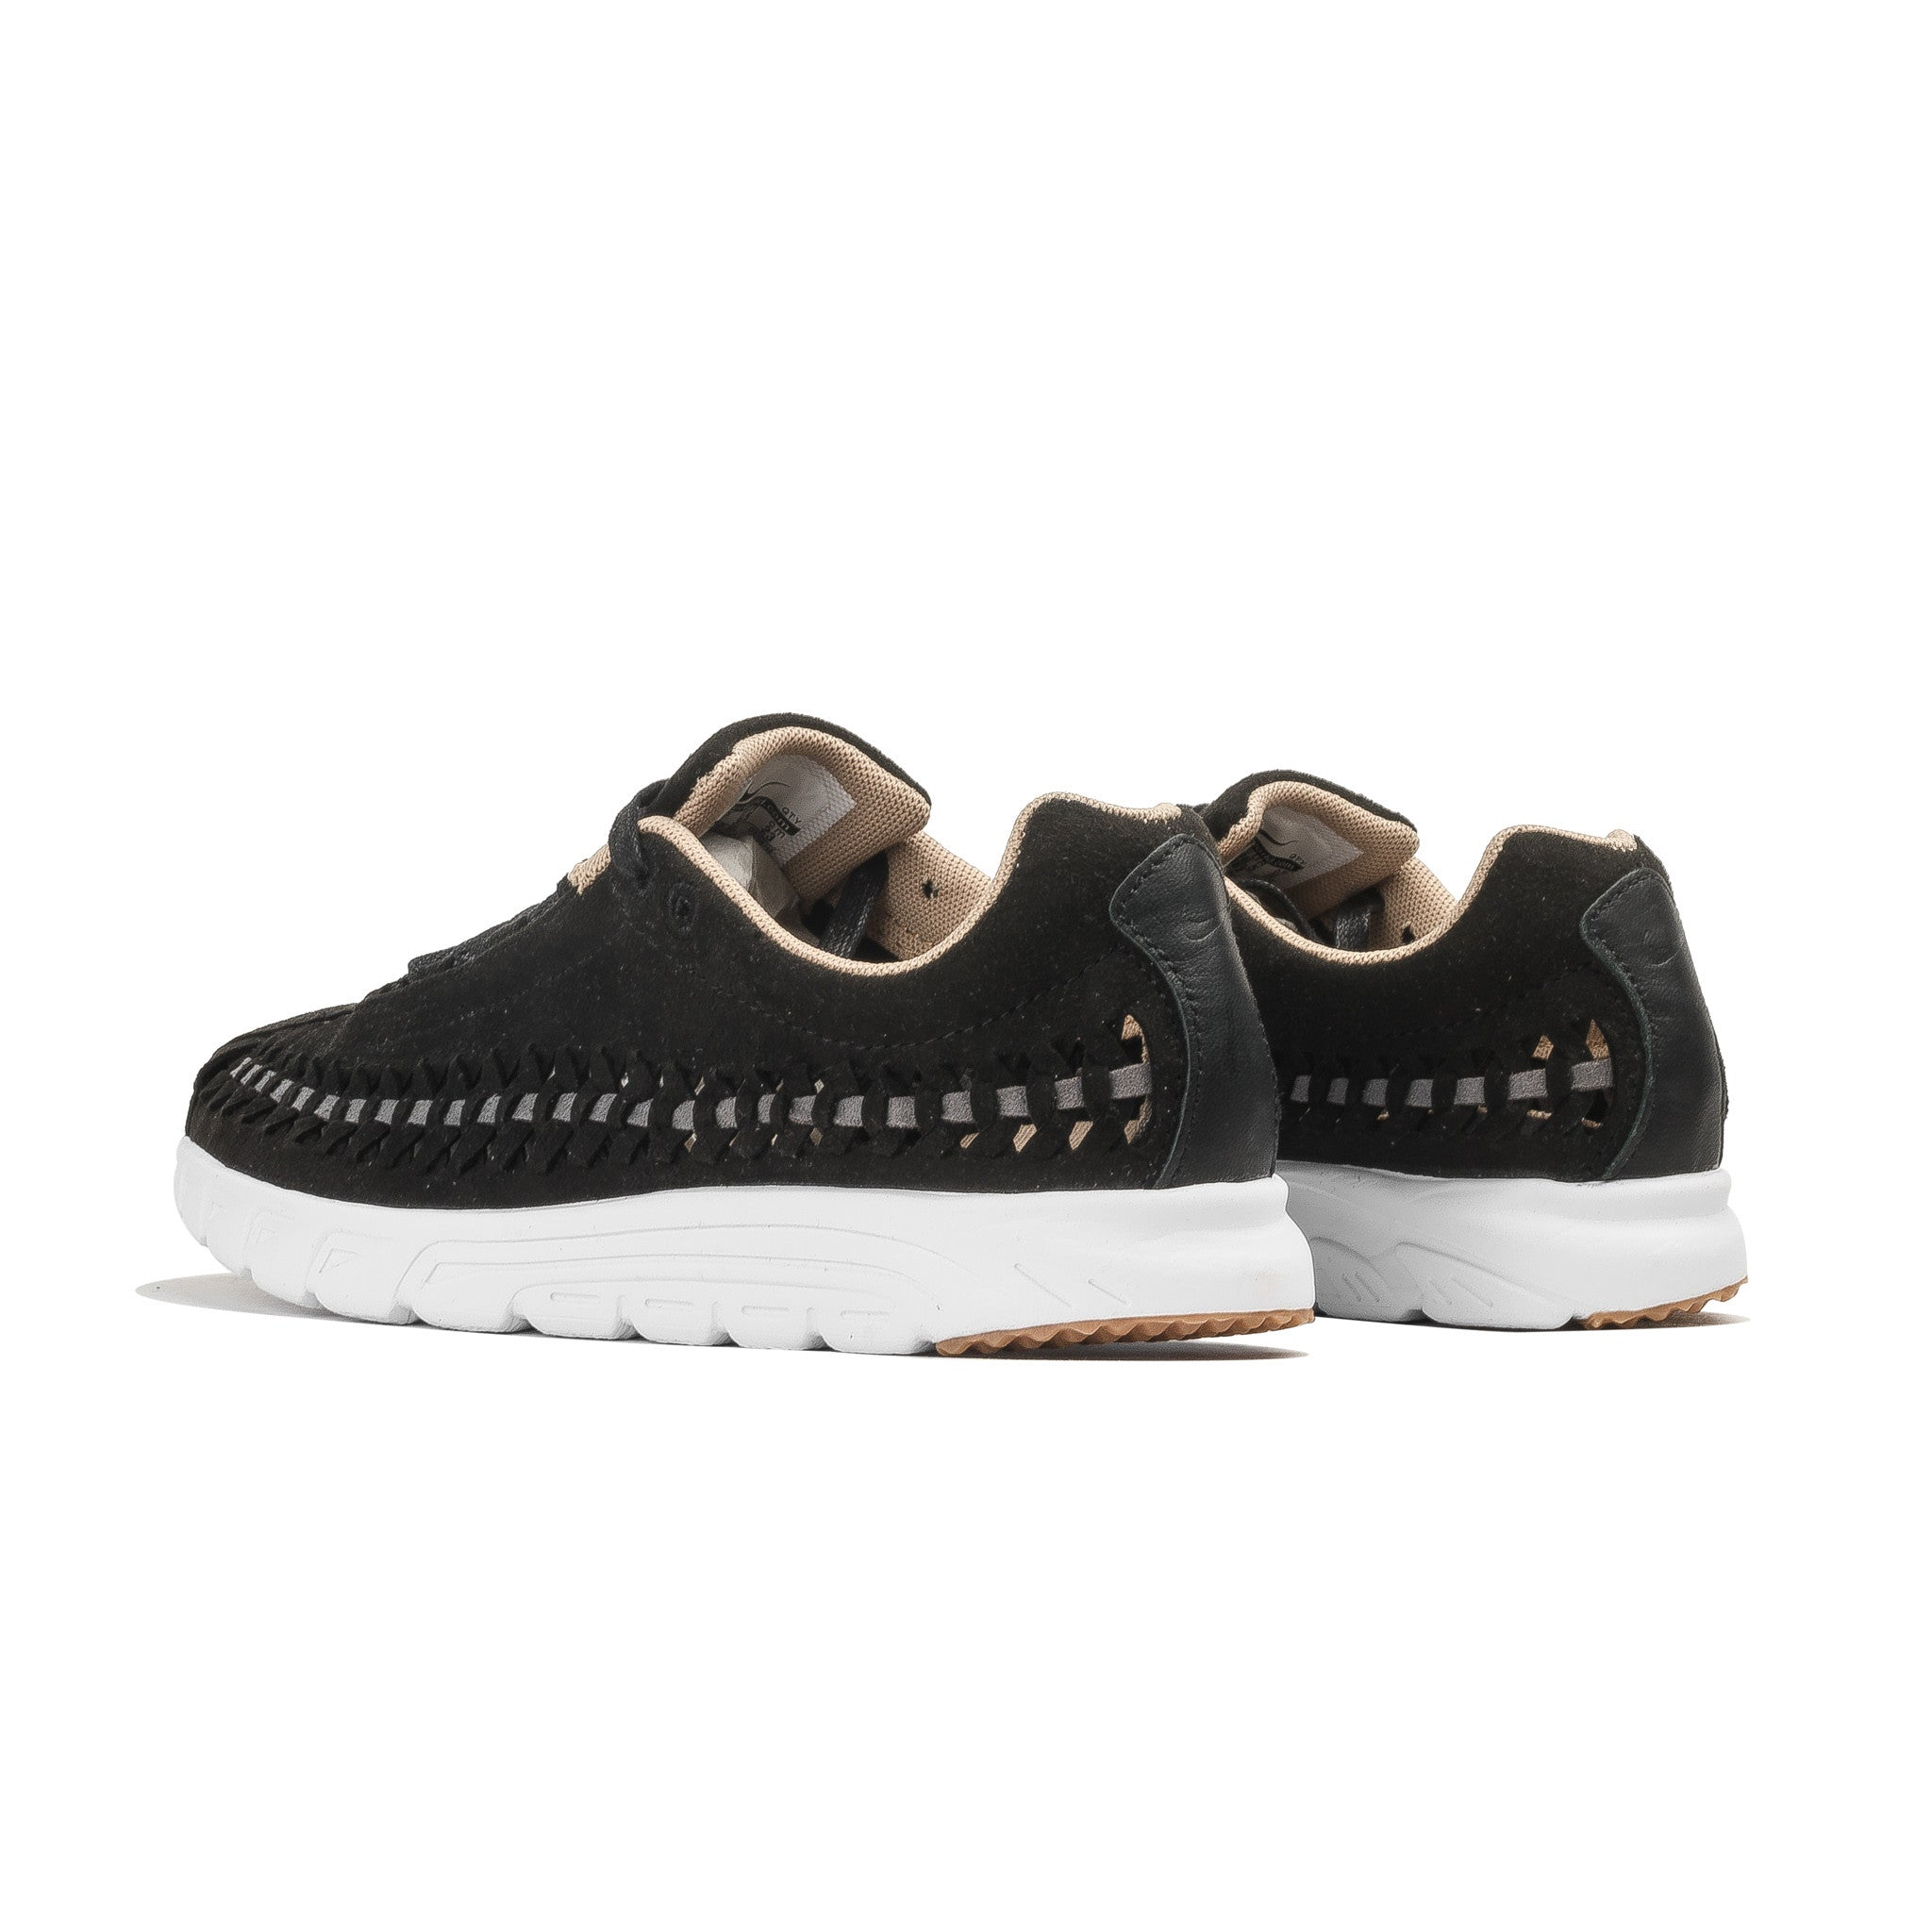 WMNS Mayfly Woven 833802-002